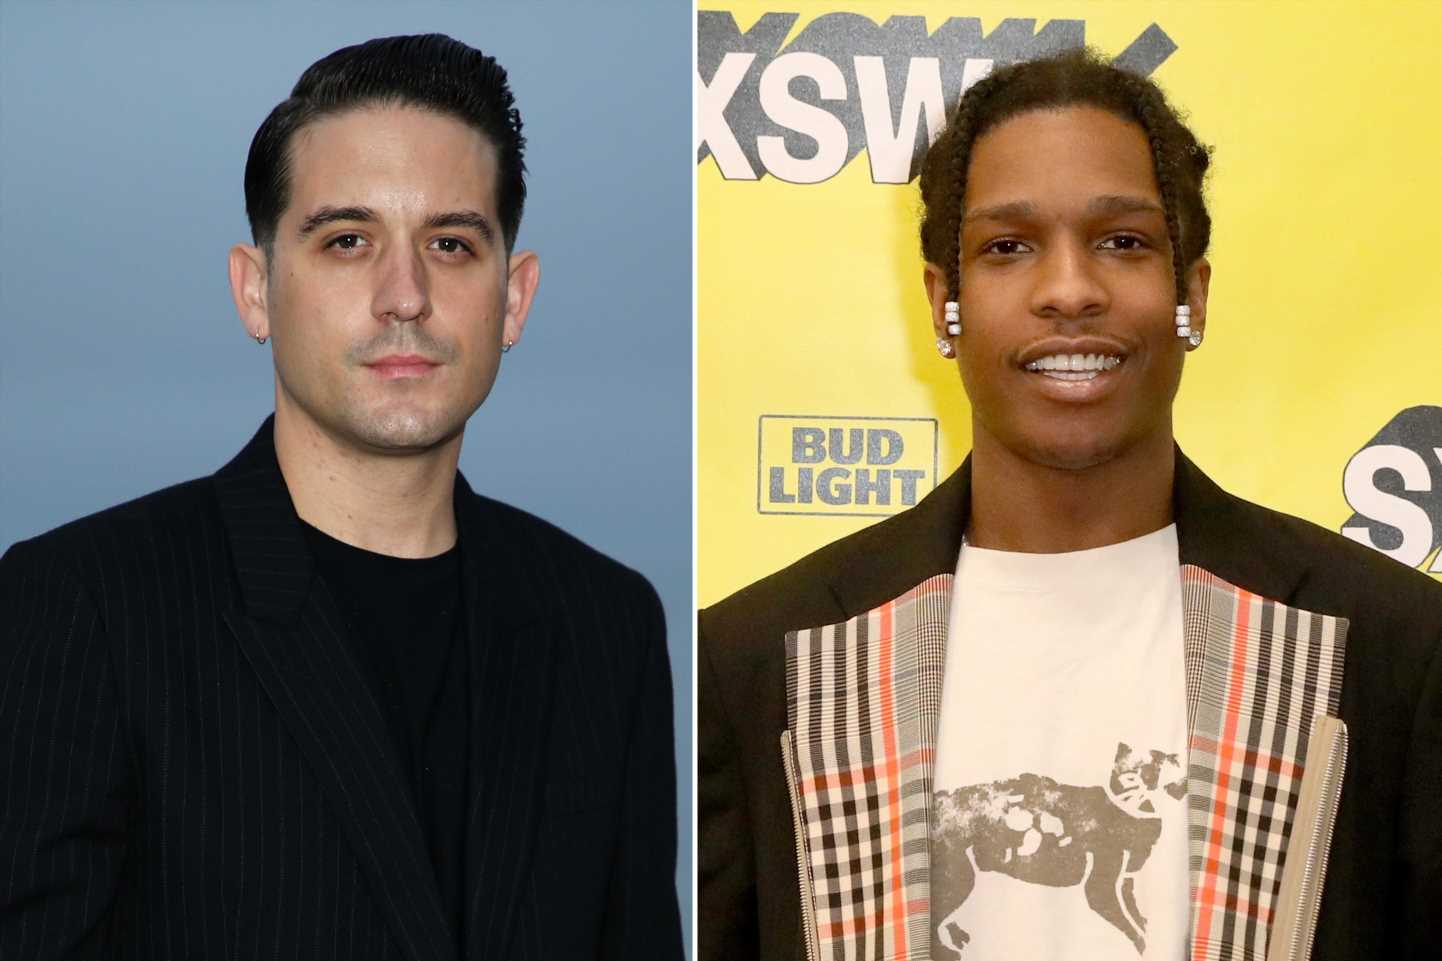 G-Eazy says Sweden treated him better than A$AP Rocky because of 'white privilege'